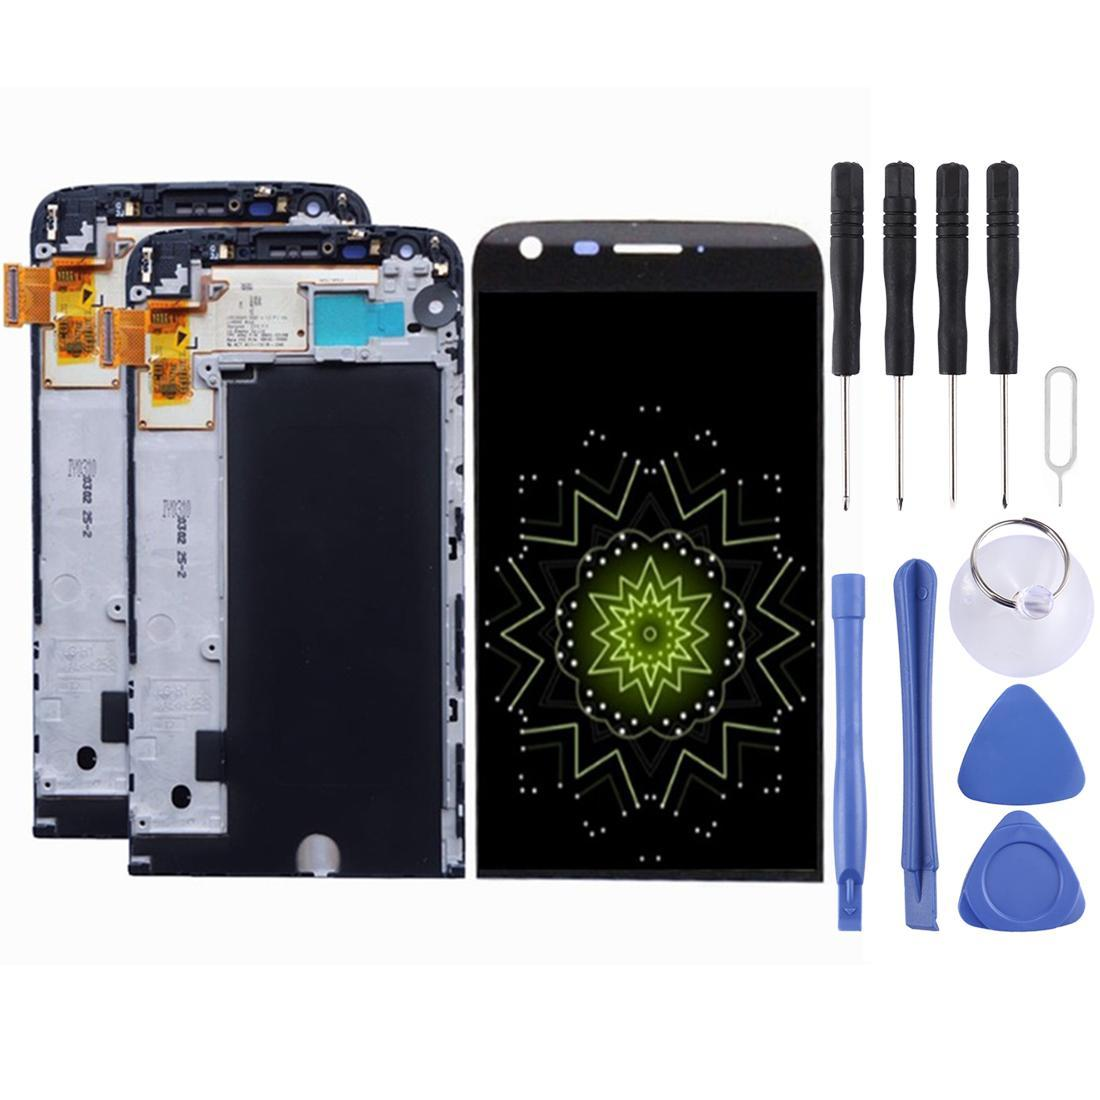 iPartsBuy Tela LCD + Touch Screen Assembly digitador com quadro, tela LCD e digitador completa Assembléia digitador Assembléia com quadro, por